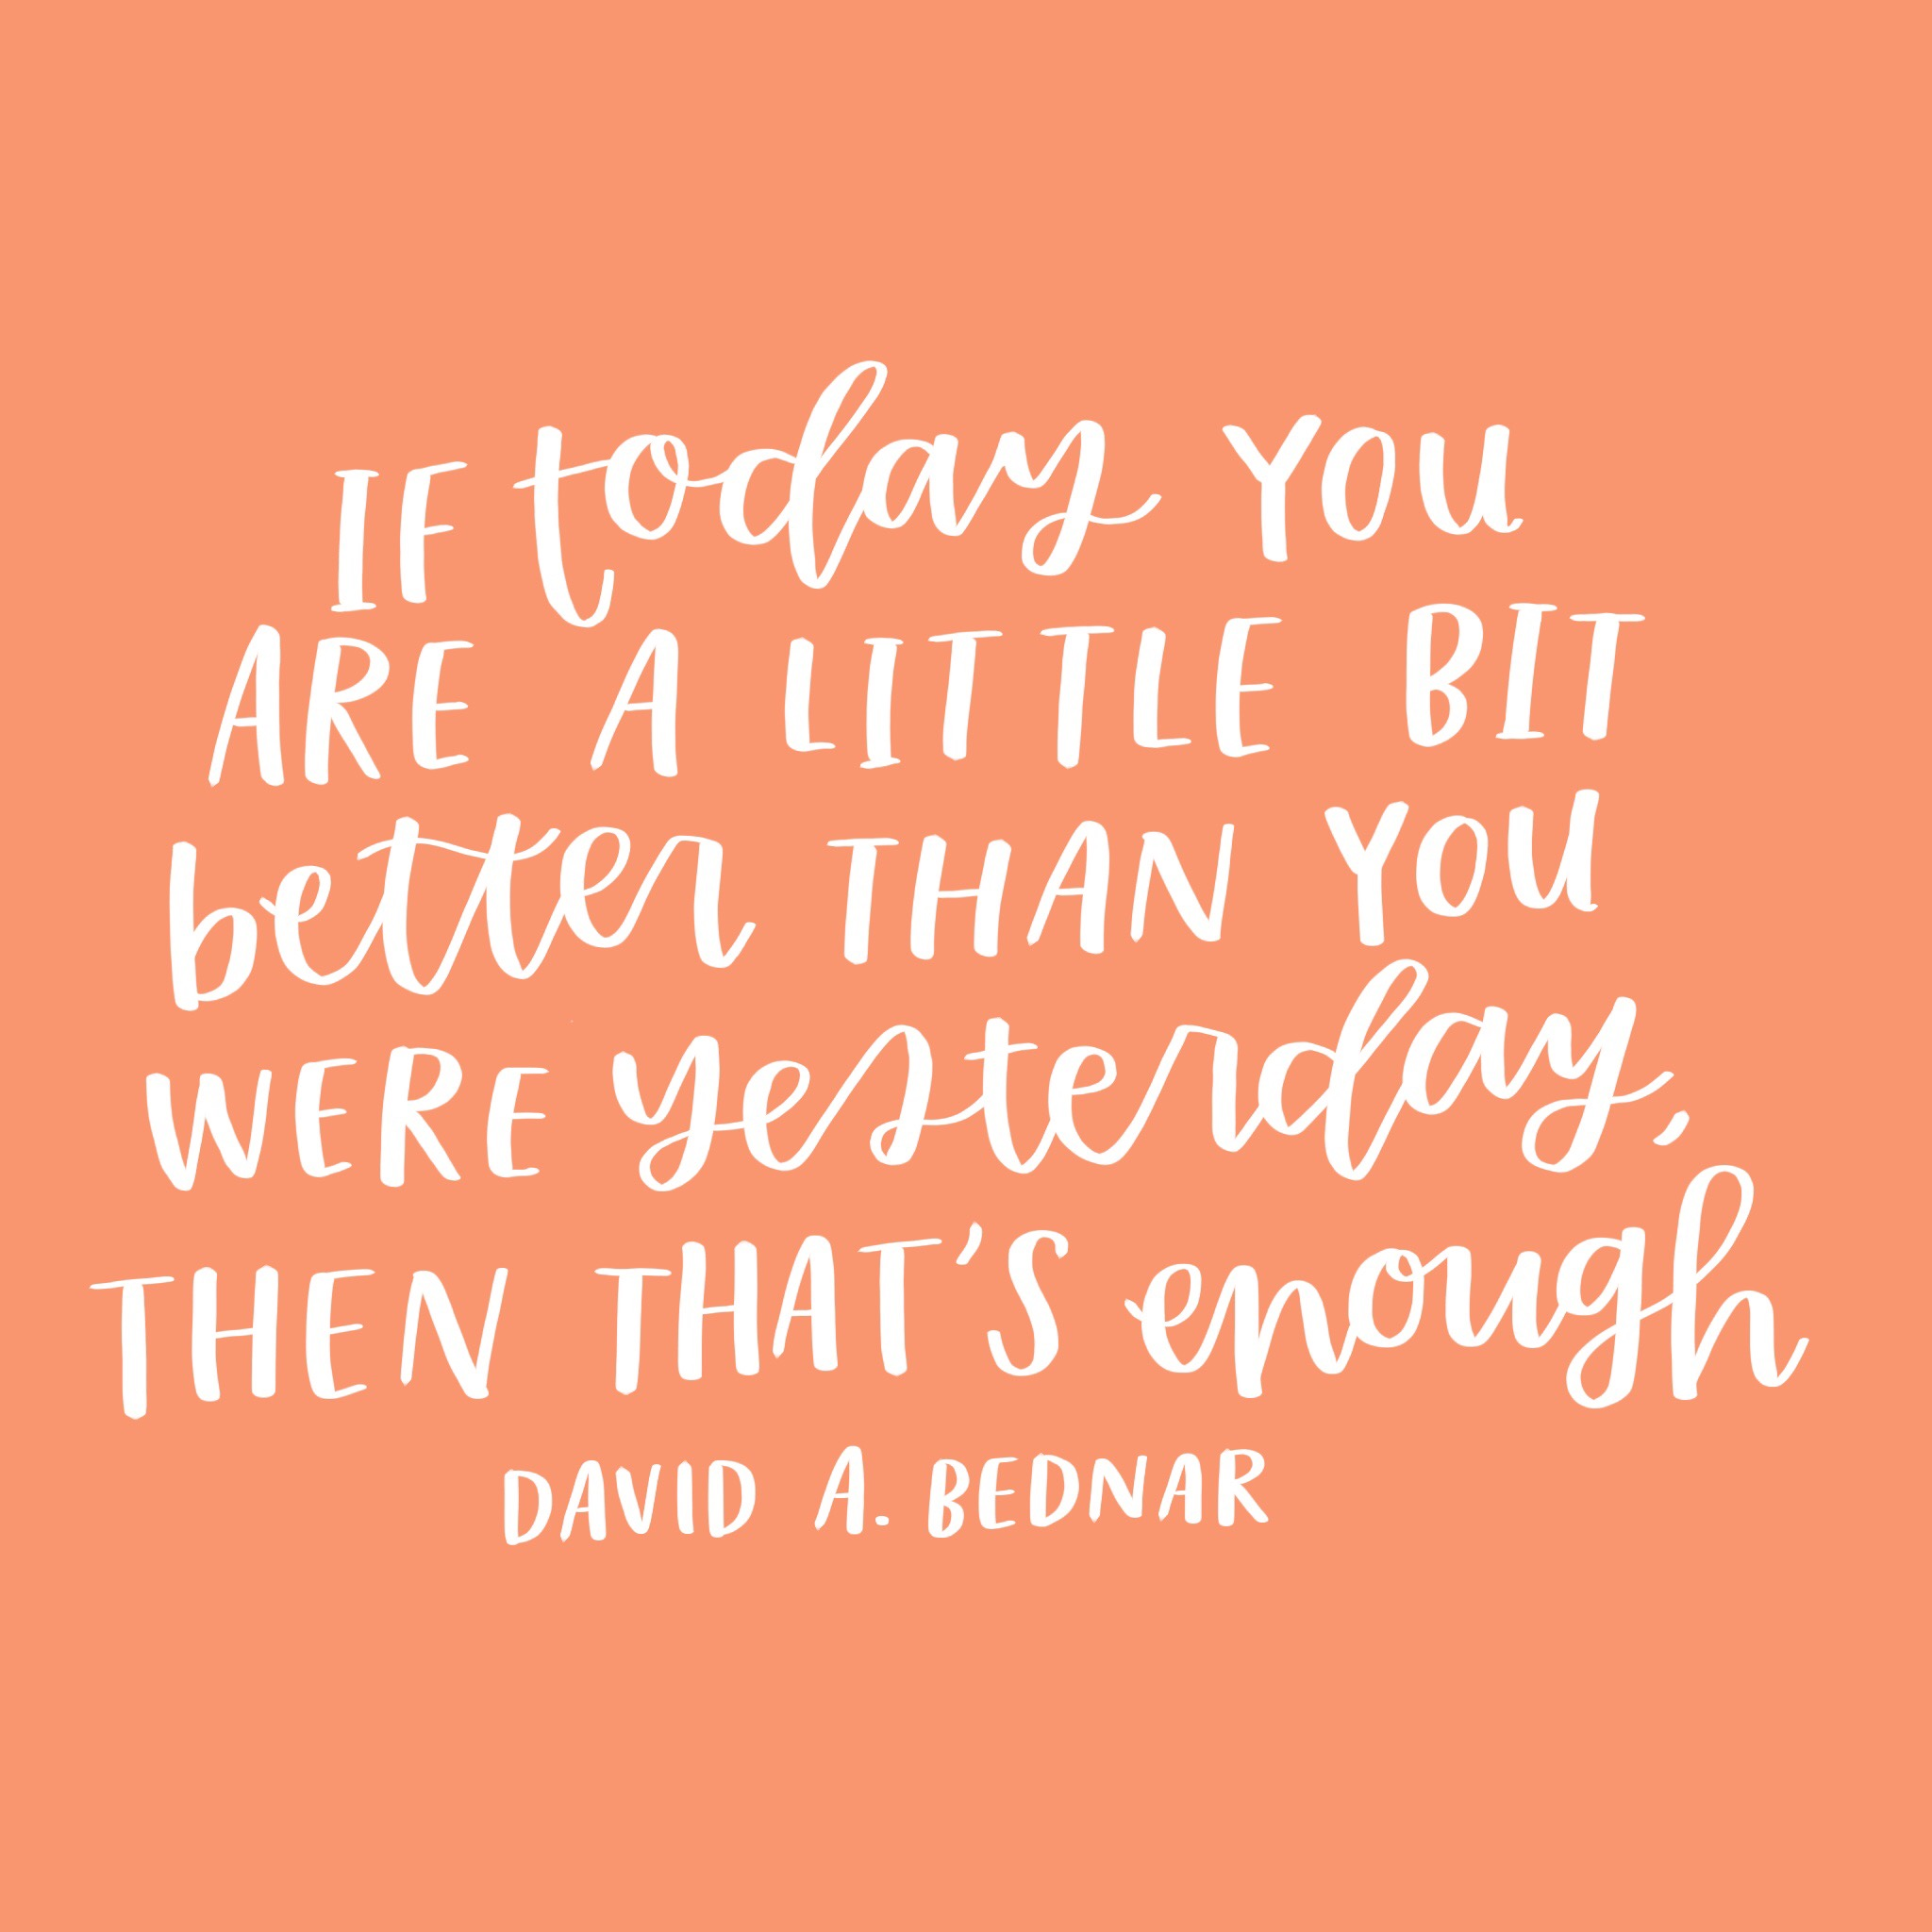 """If today you are a little bit better than you were yesterday, then that is enough."" -David A. Bednar"